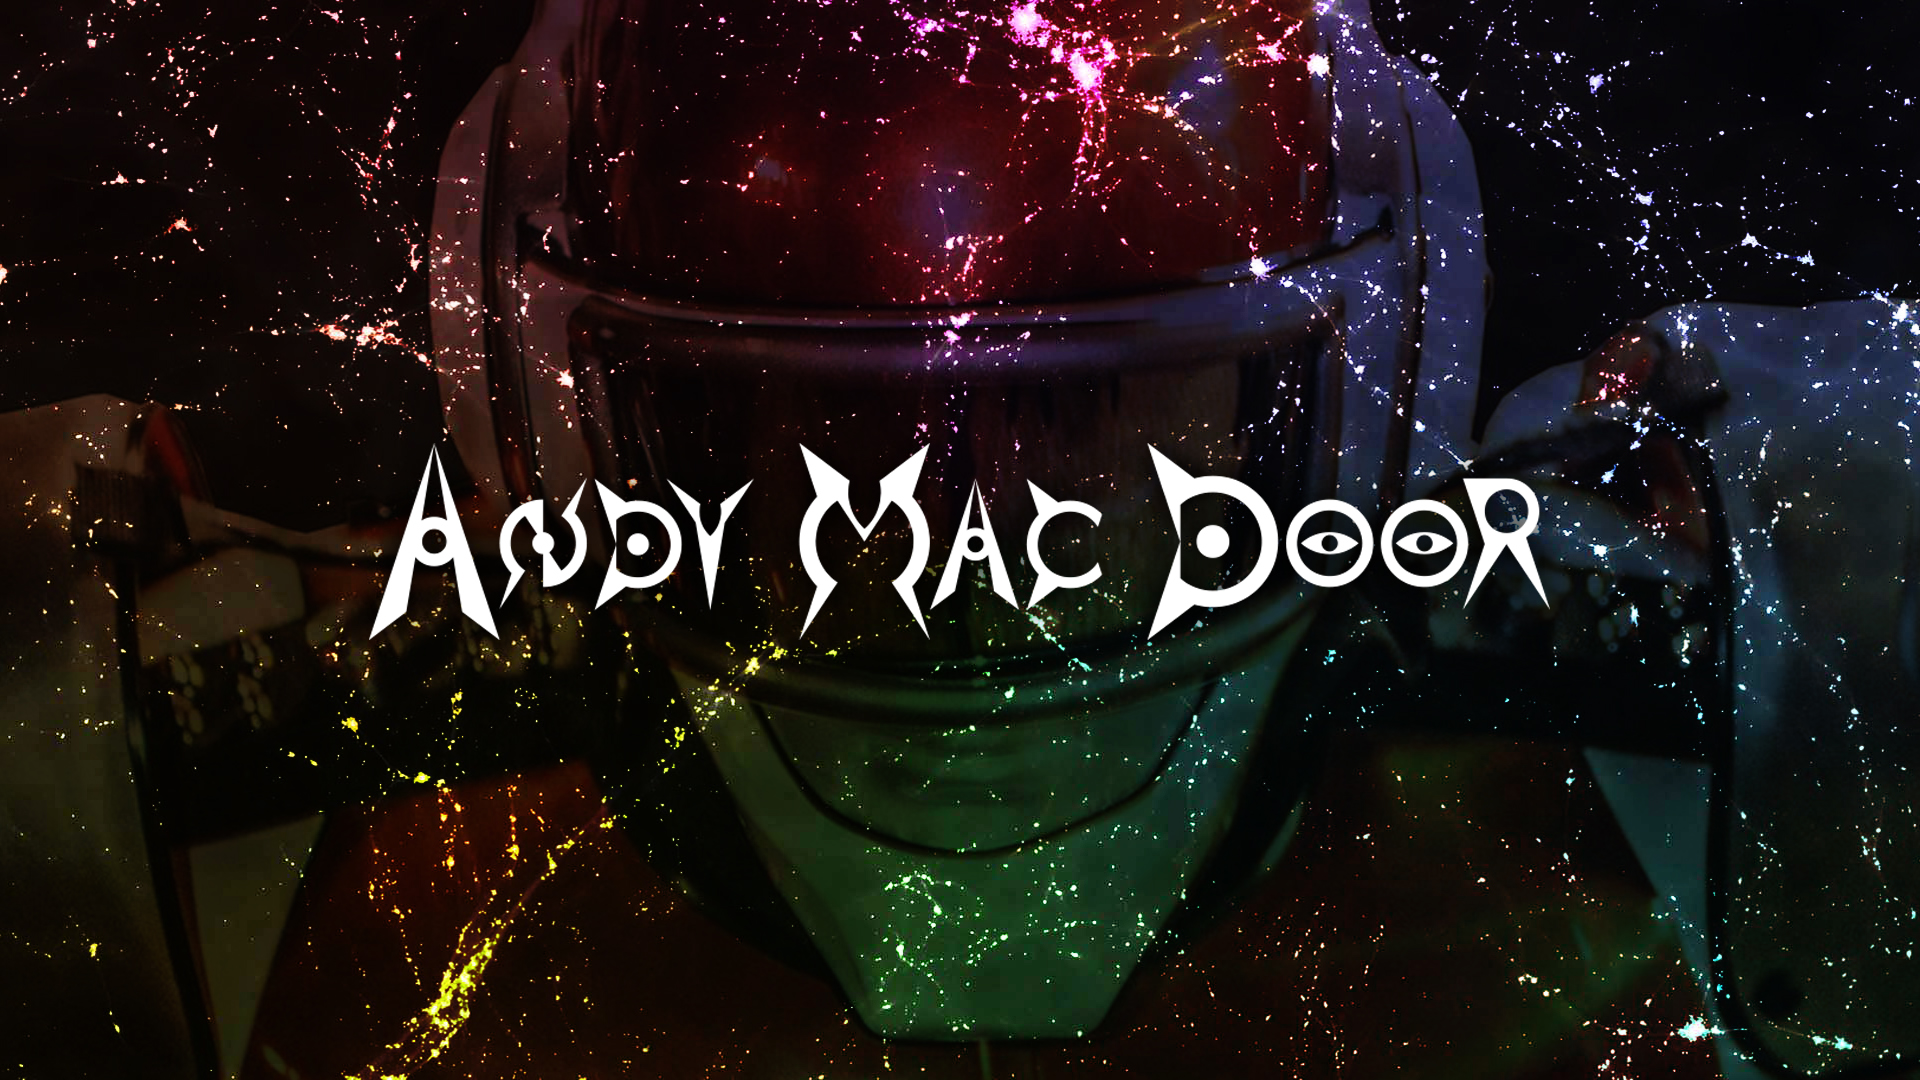 Andy Mac Door andymacdoor wallpaper galaxie galaxy space espace hd background fond d écran